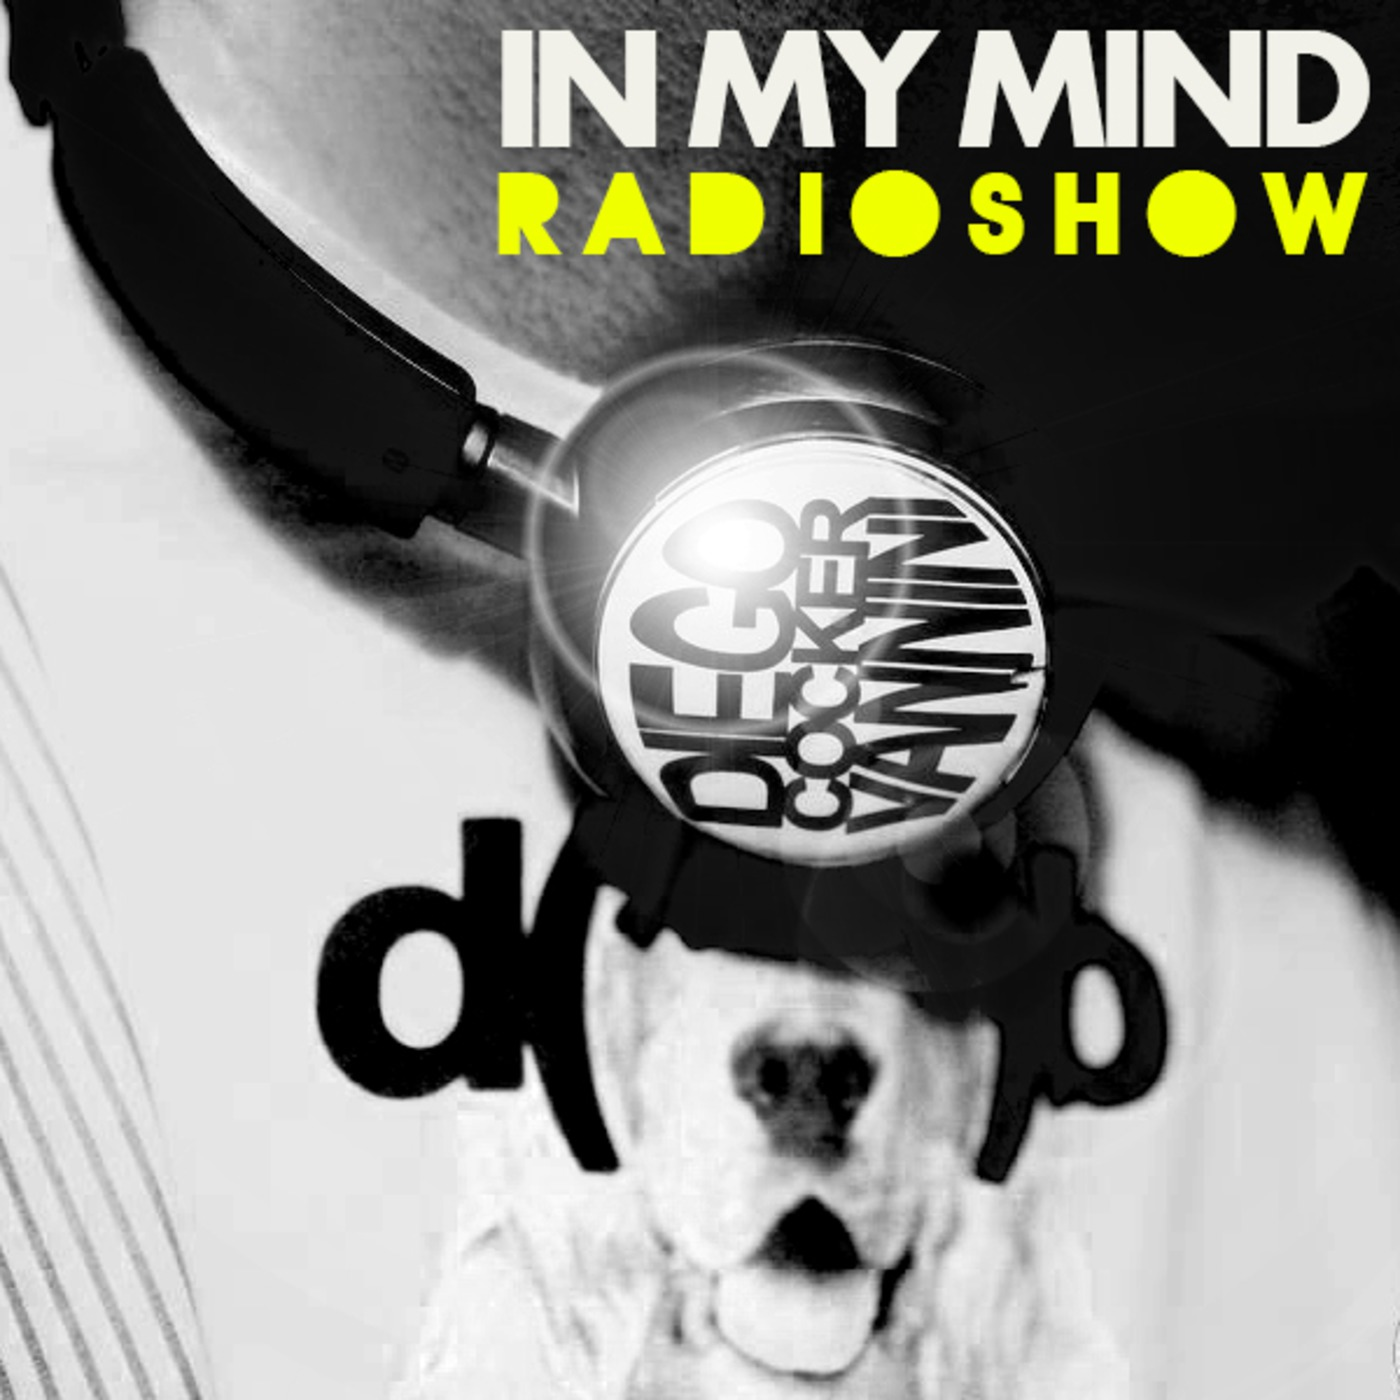 Cocker Vannini introduce In My Mind RadioShow